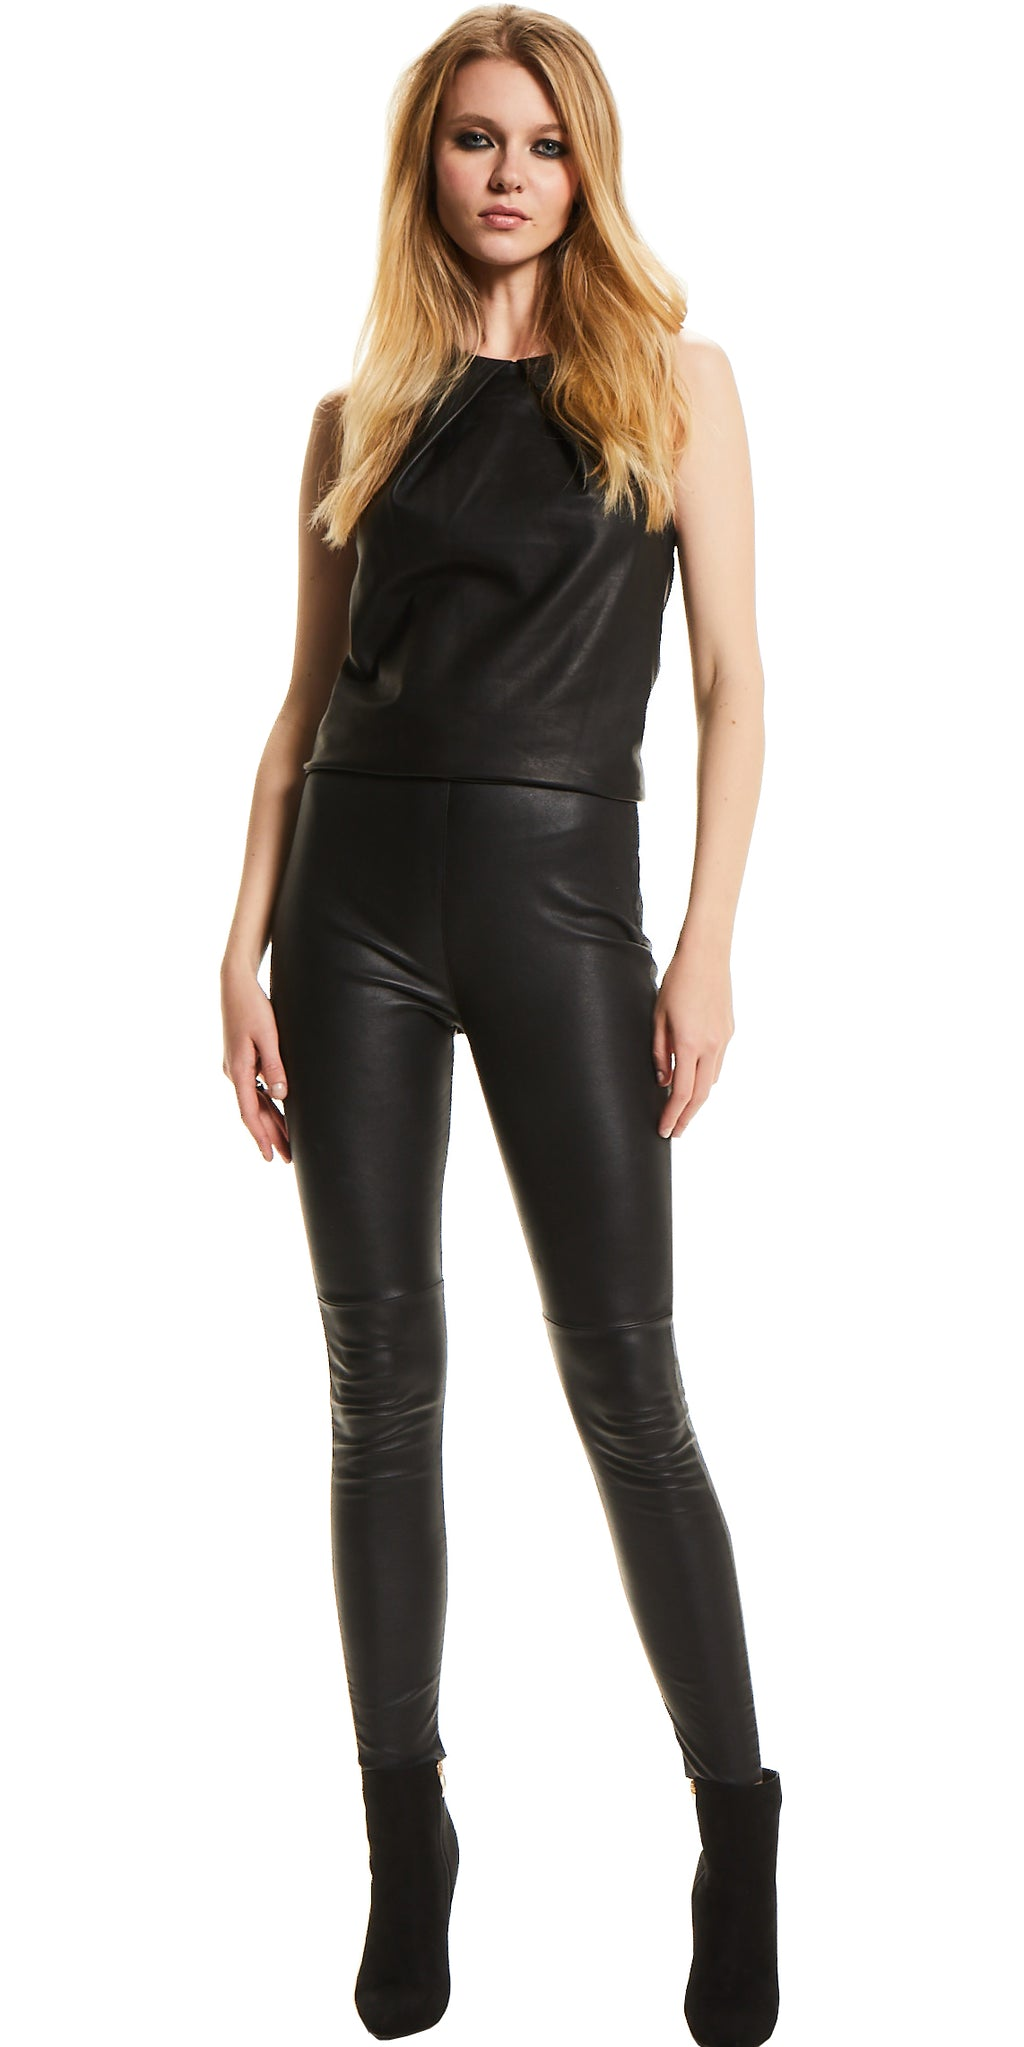 P A C I N O   Stretch Leather Pants